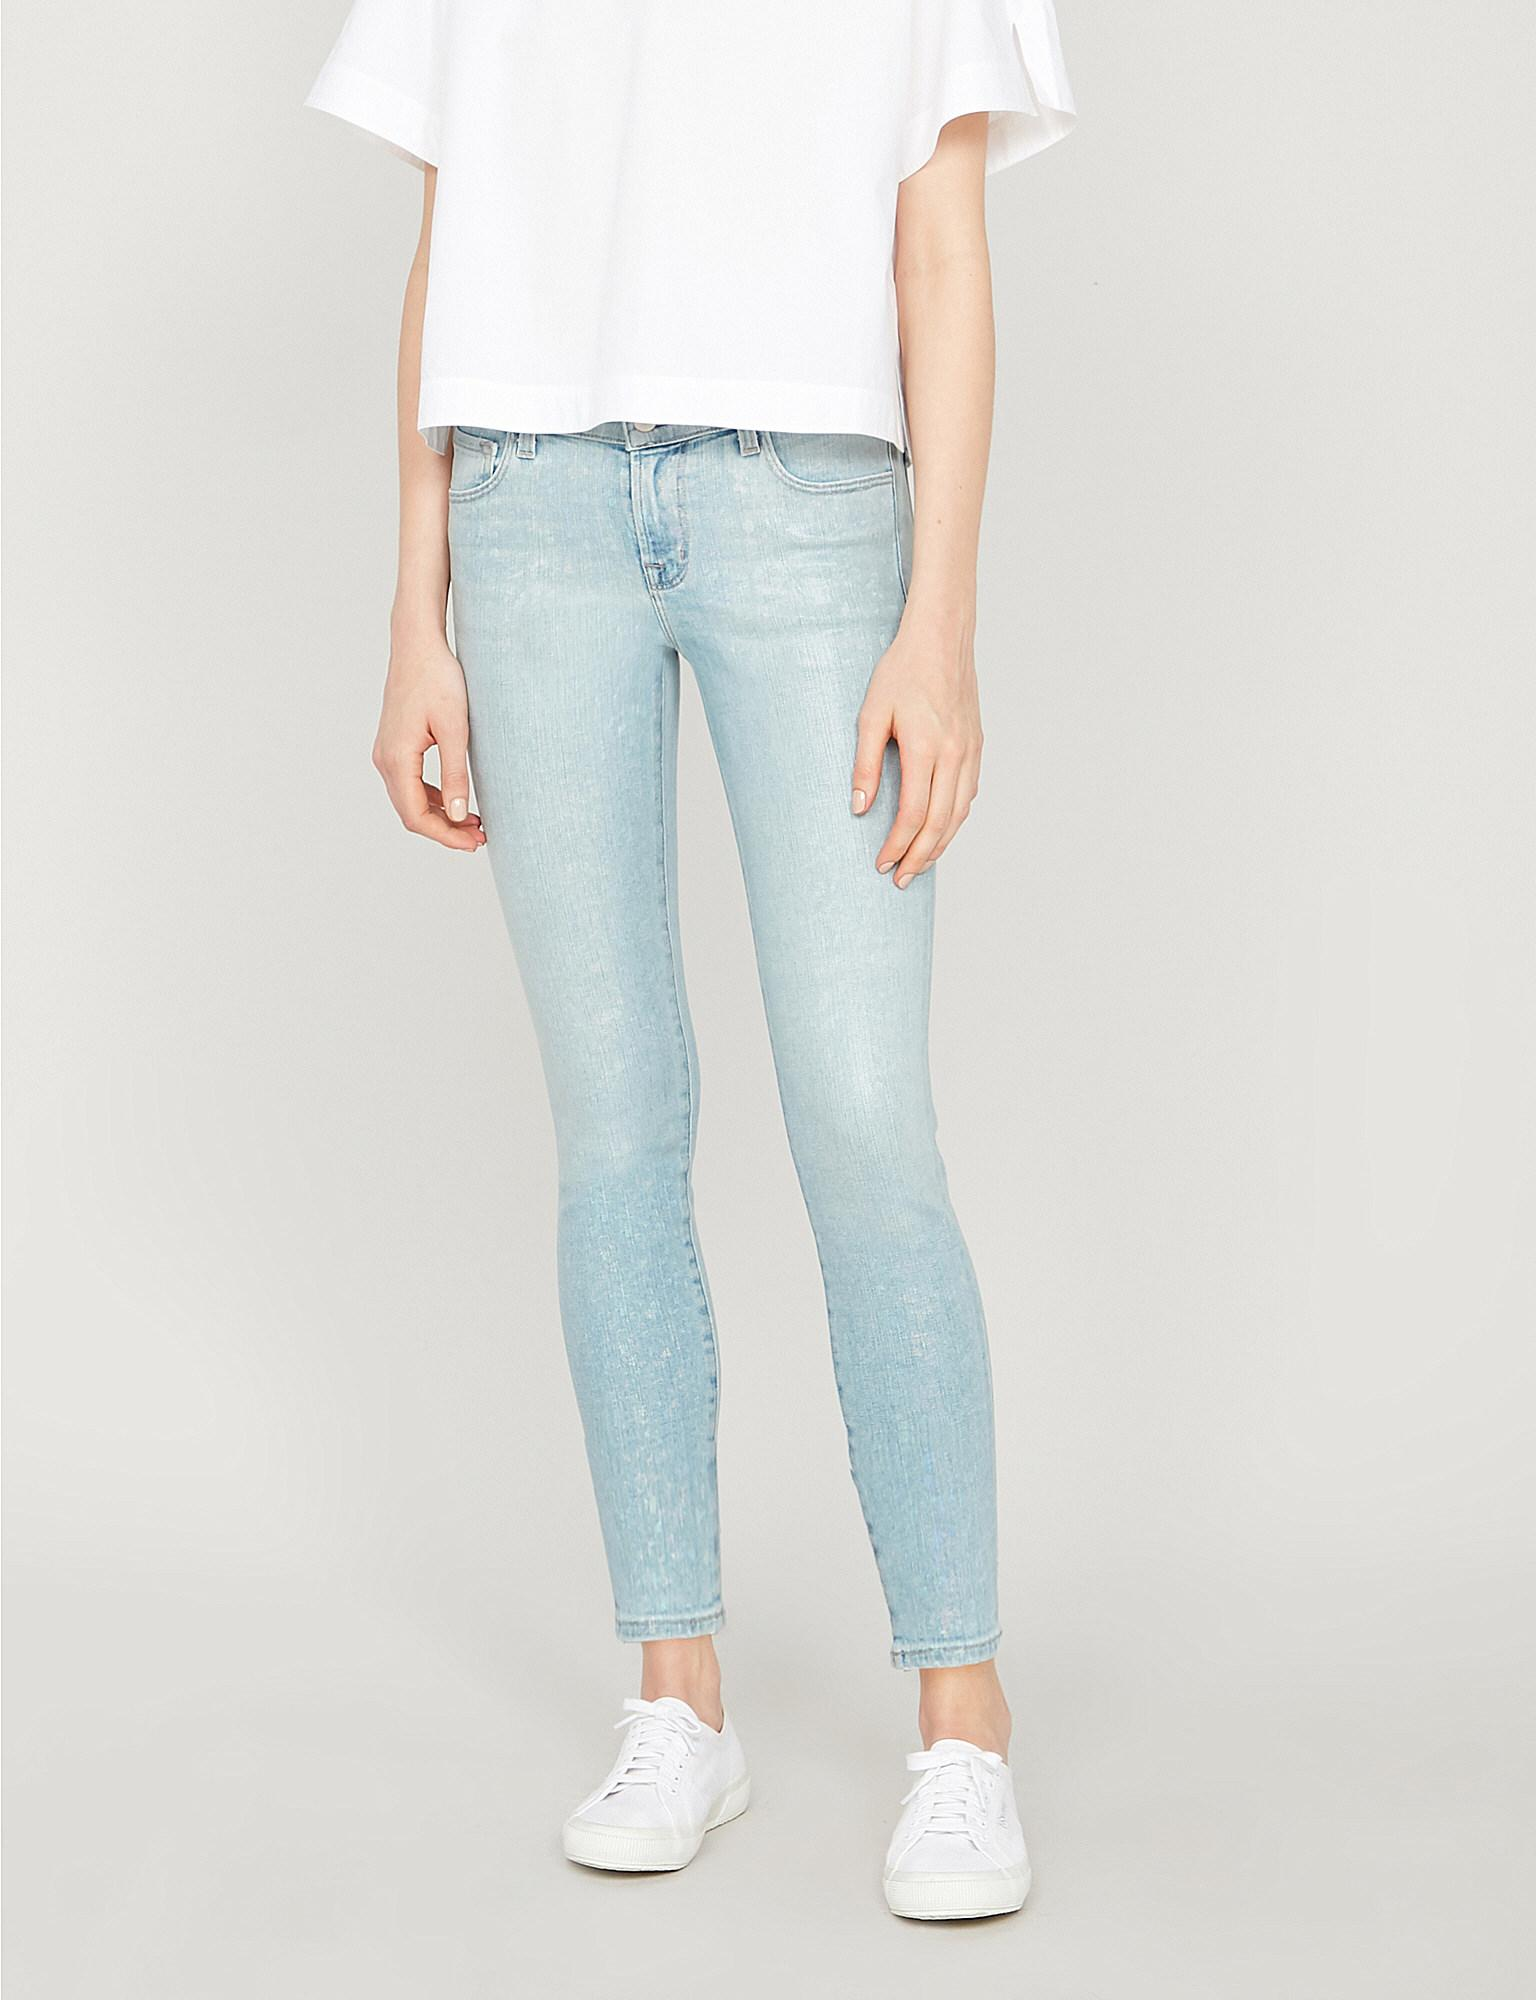 02b9136319b88 Lyst - J Brand 835 Cropped Mid-rise Foiled Skinny Jeans in Blue